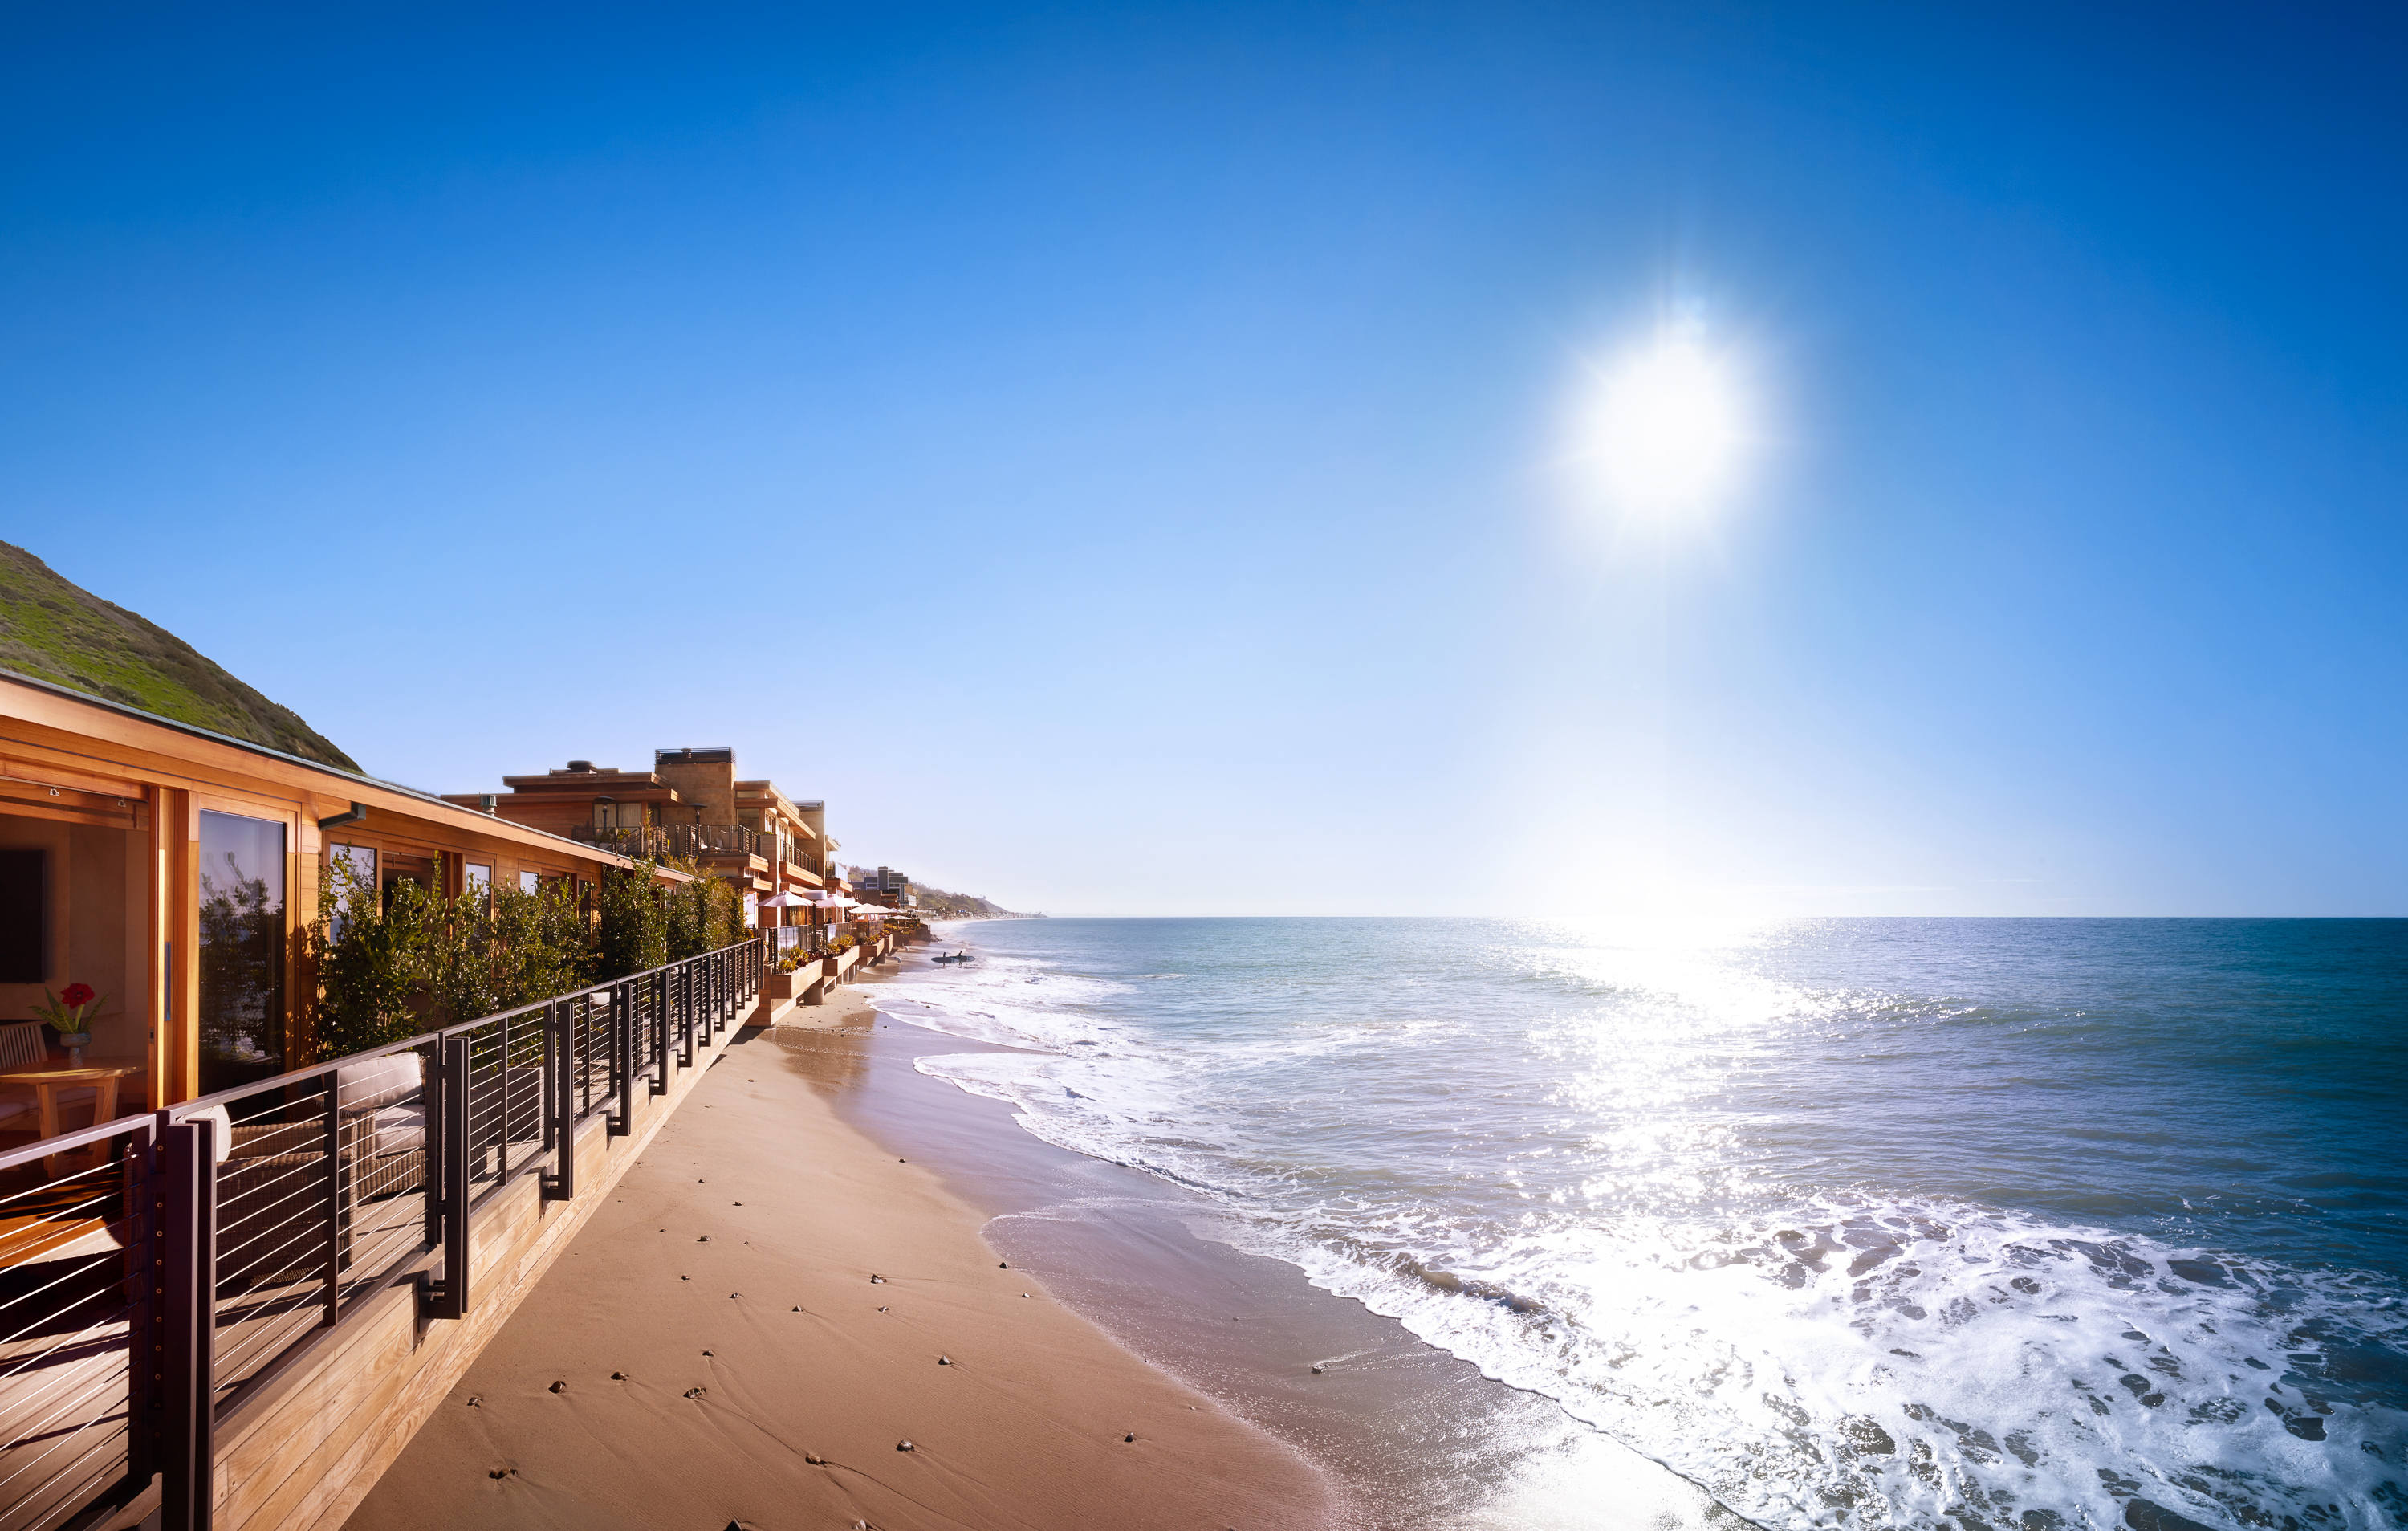 Rooms at the nobu ryokan malibu are expected to start at 1 100 a night with a two night minimum the hotel s website cautions that during preferred times